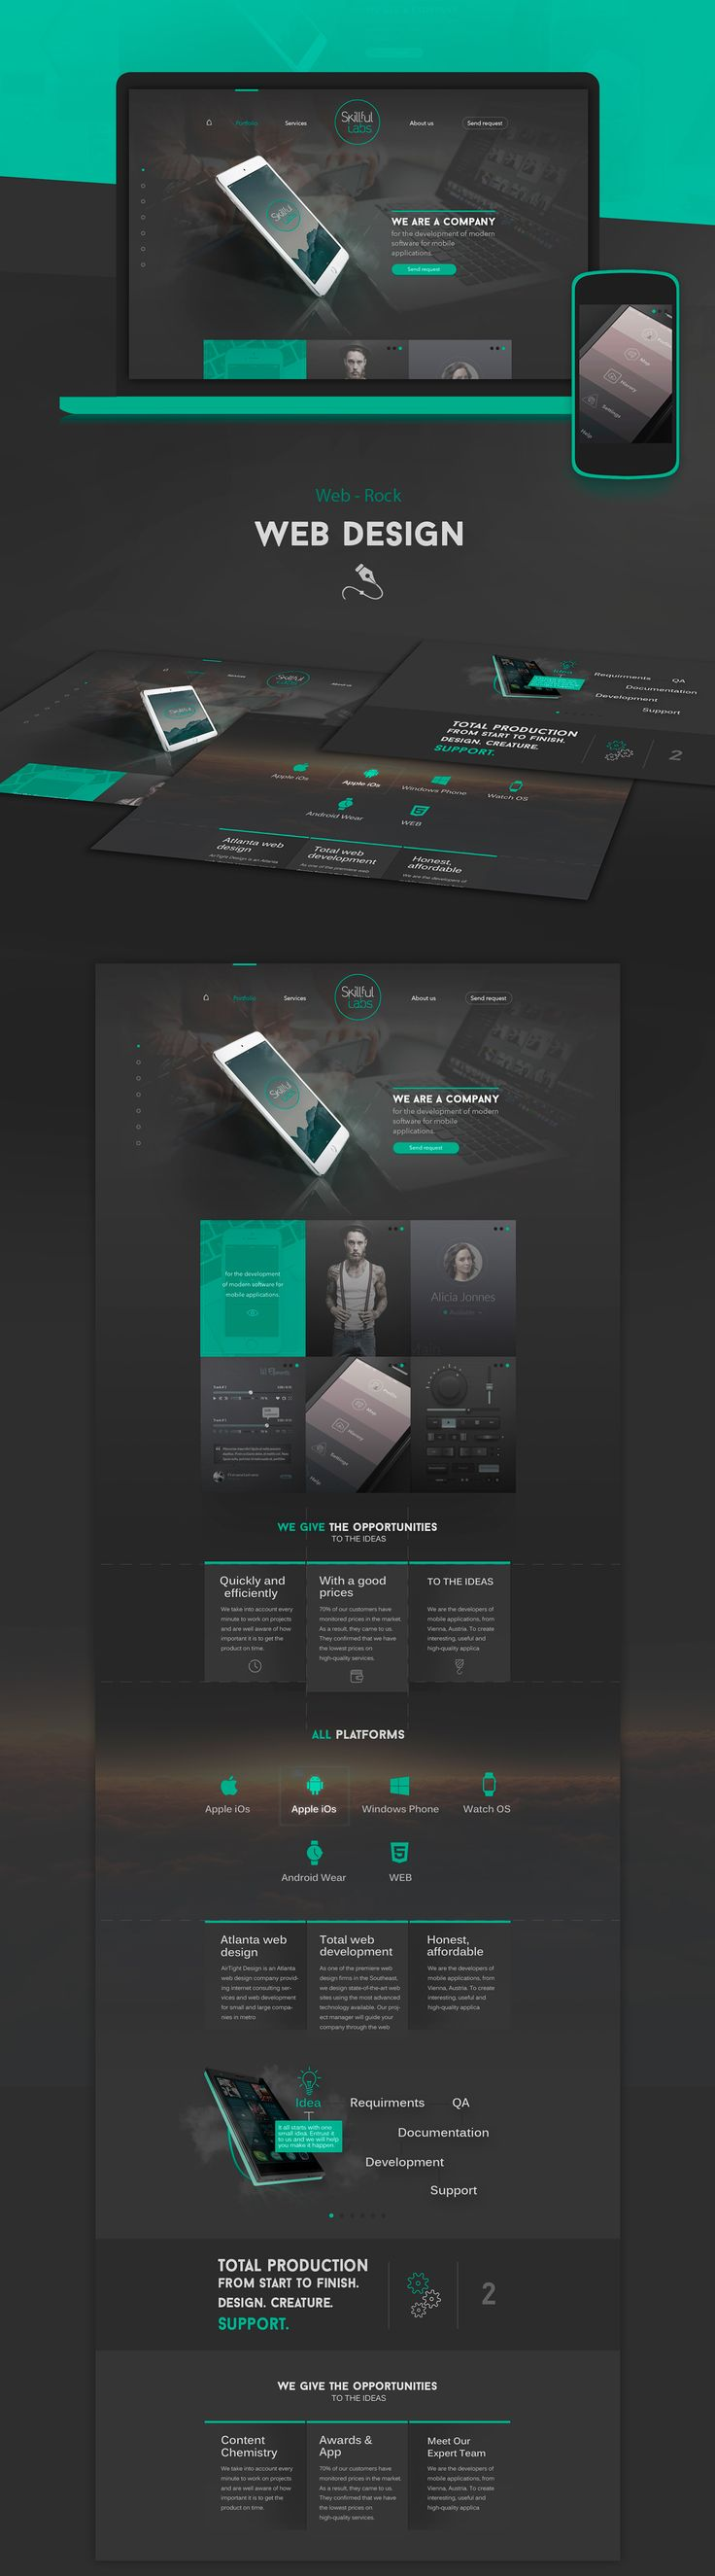 web design templates web design services rock design web design